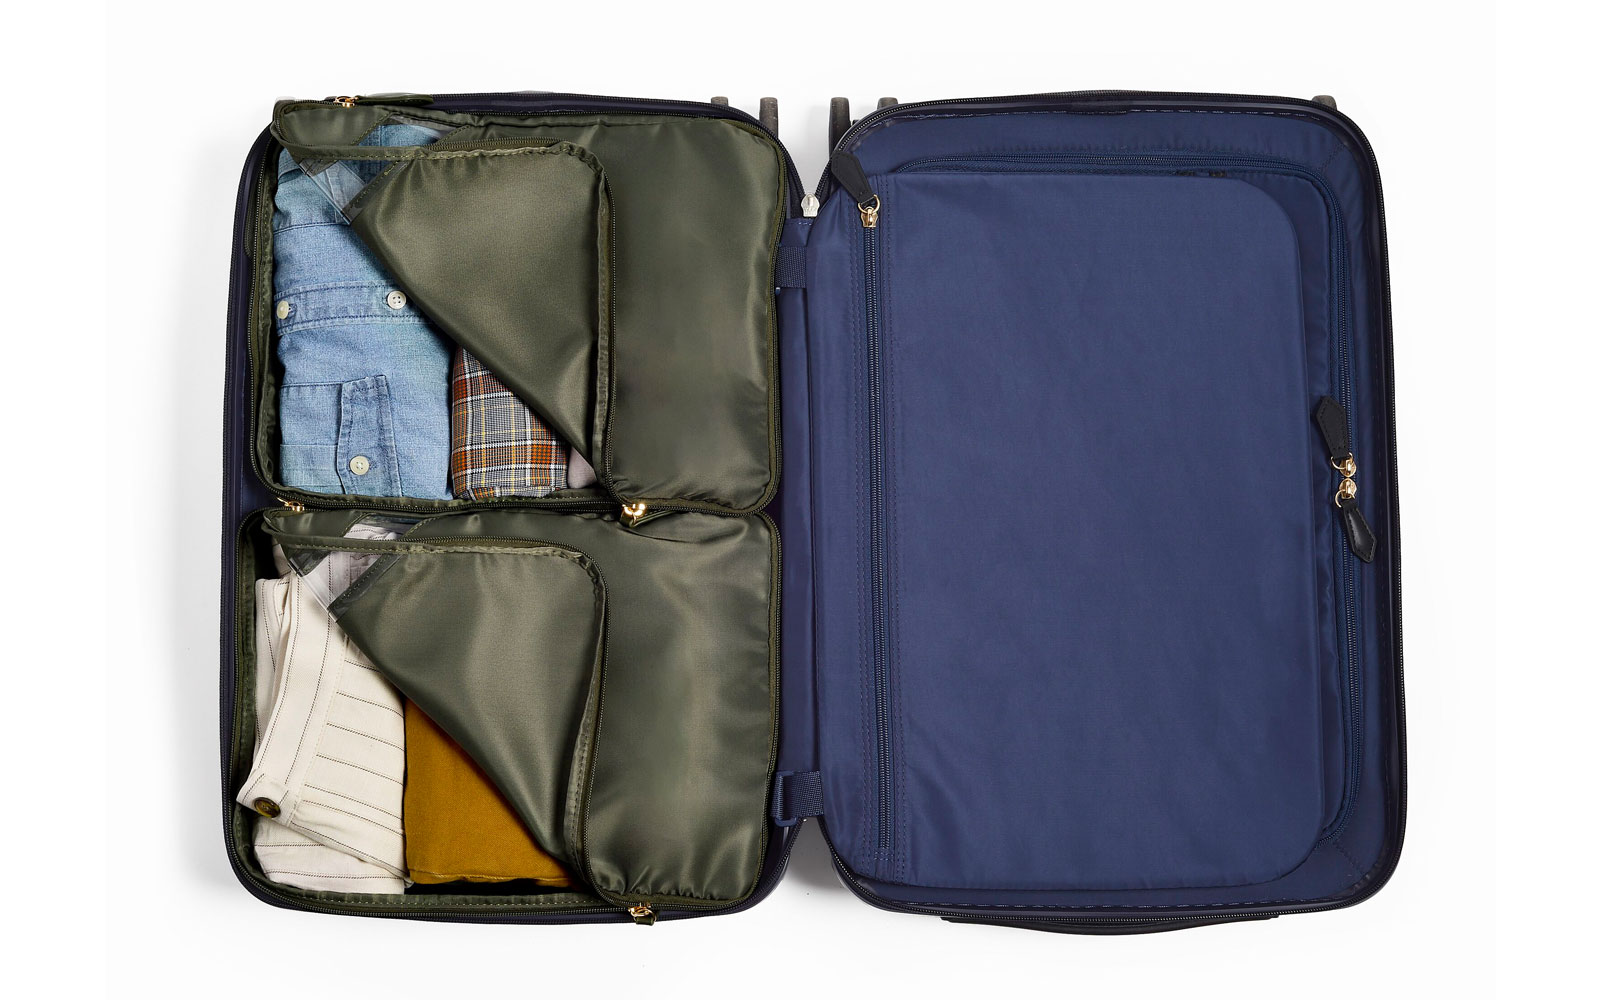 Interior of suitcase with packing cubes